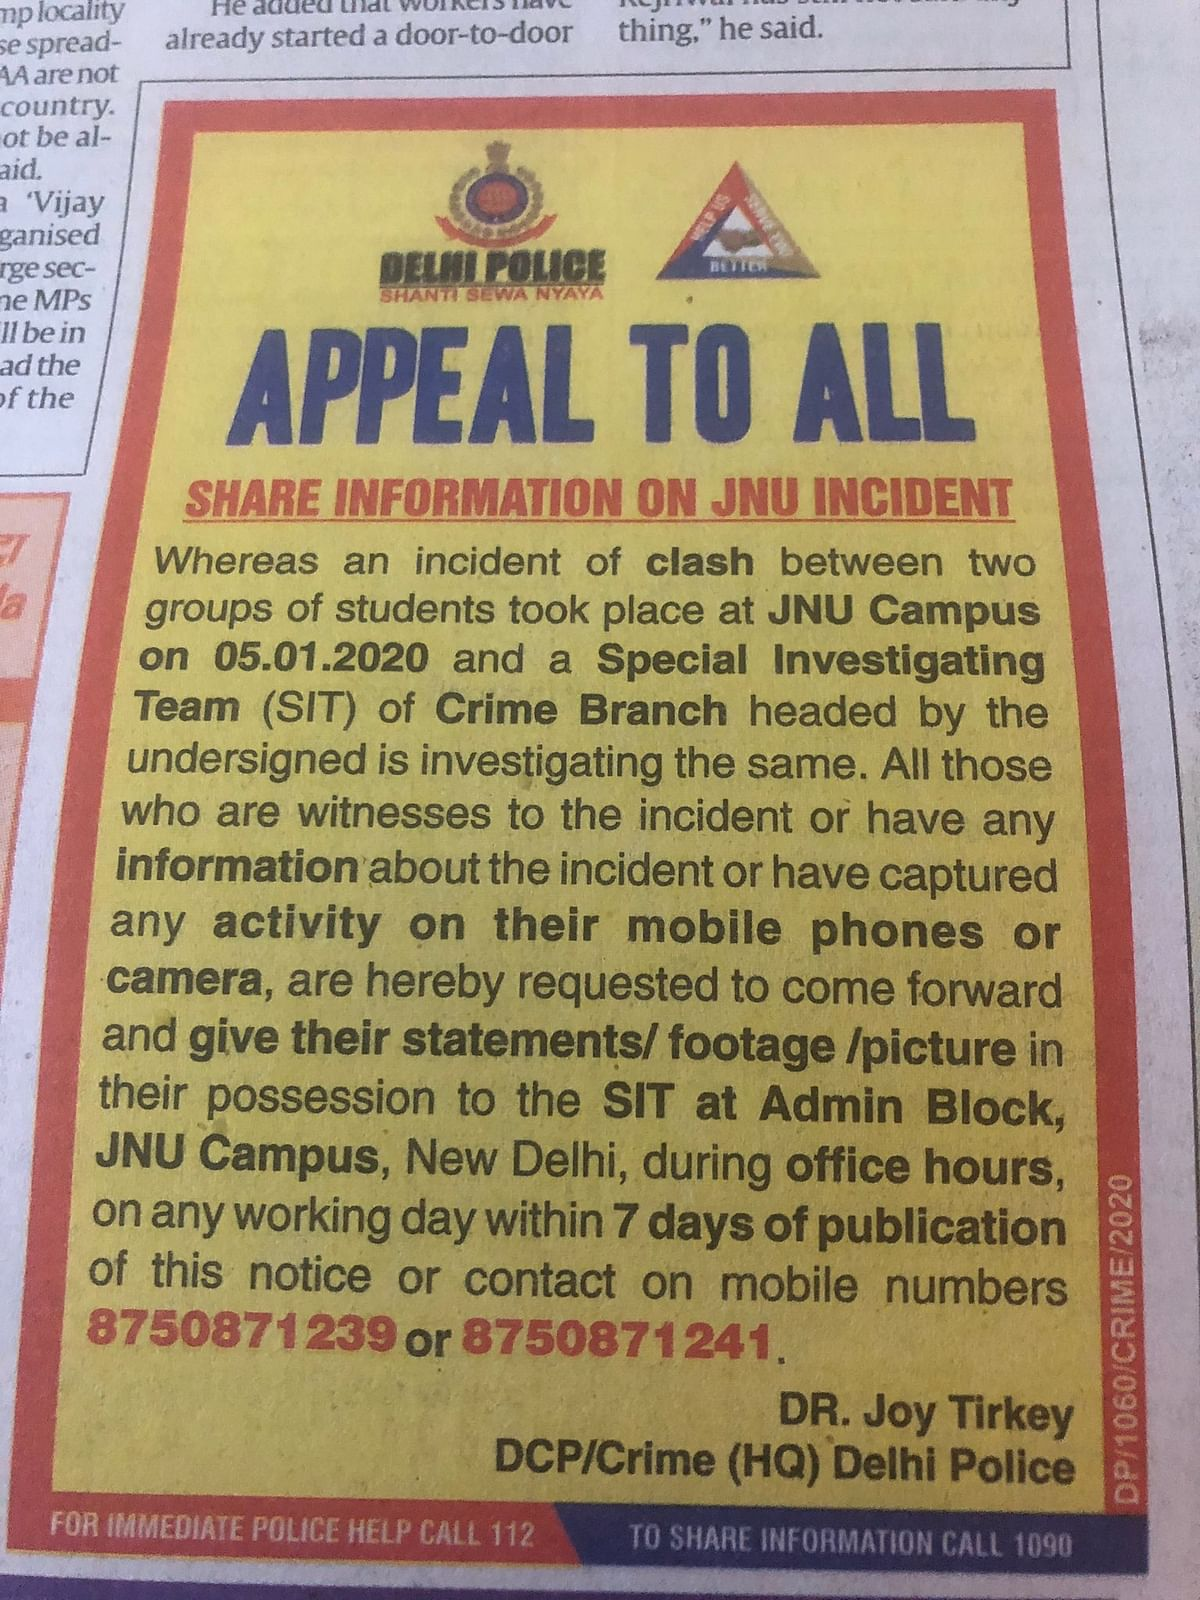 Delhi police publishes ad requesting info on JNU; what happened to available information?